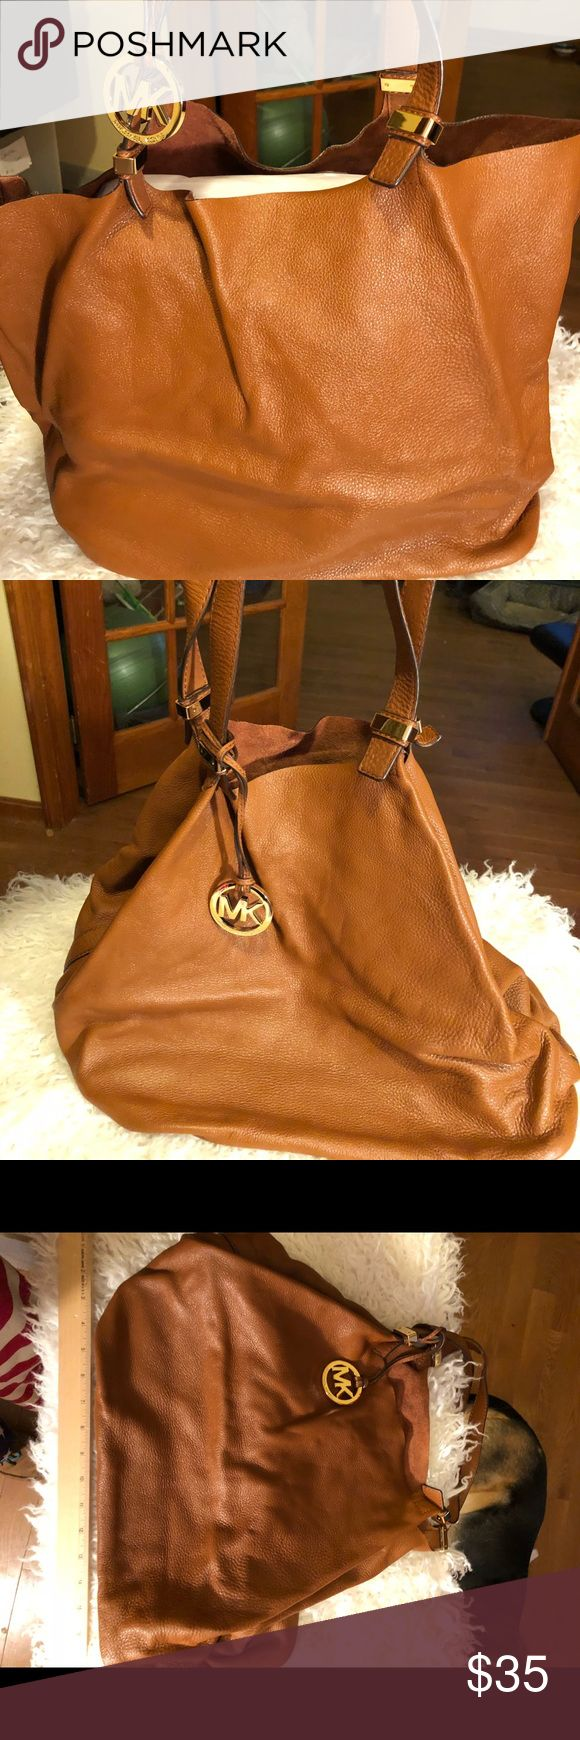 MICHAEL KORS LARGE SLOUCHY SOFT LEATHER TOTE LARGE MICHAEL KORS TOTE. Brass hardware and logo charm. Super soft camel colored glove leather. Open top. Twin long shoulder straps. Sides fold in for smaller loads. Michael Kors Bags Totes